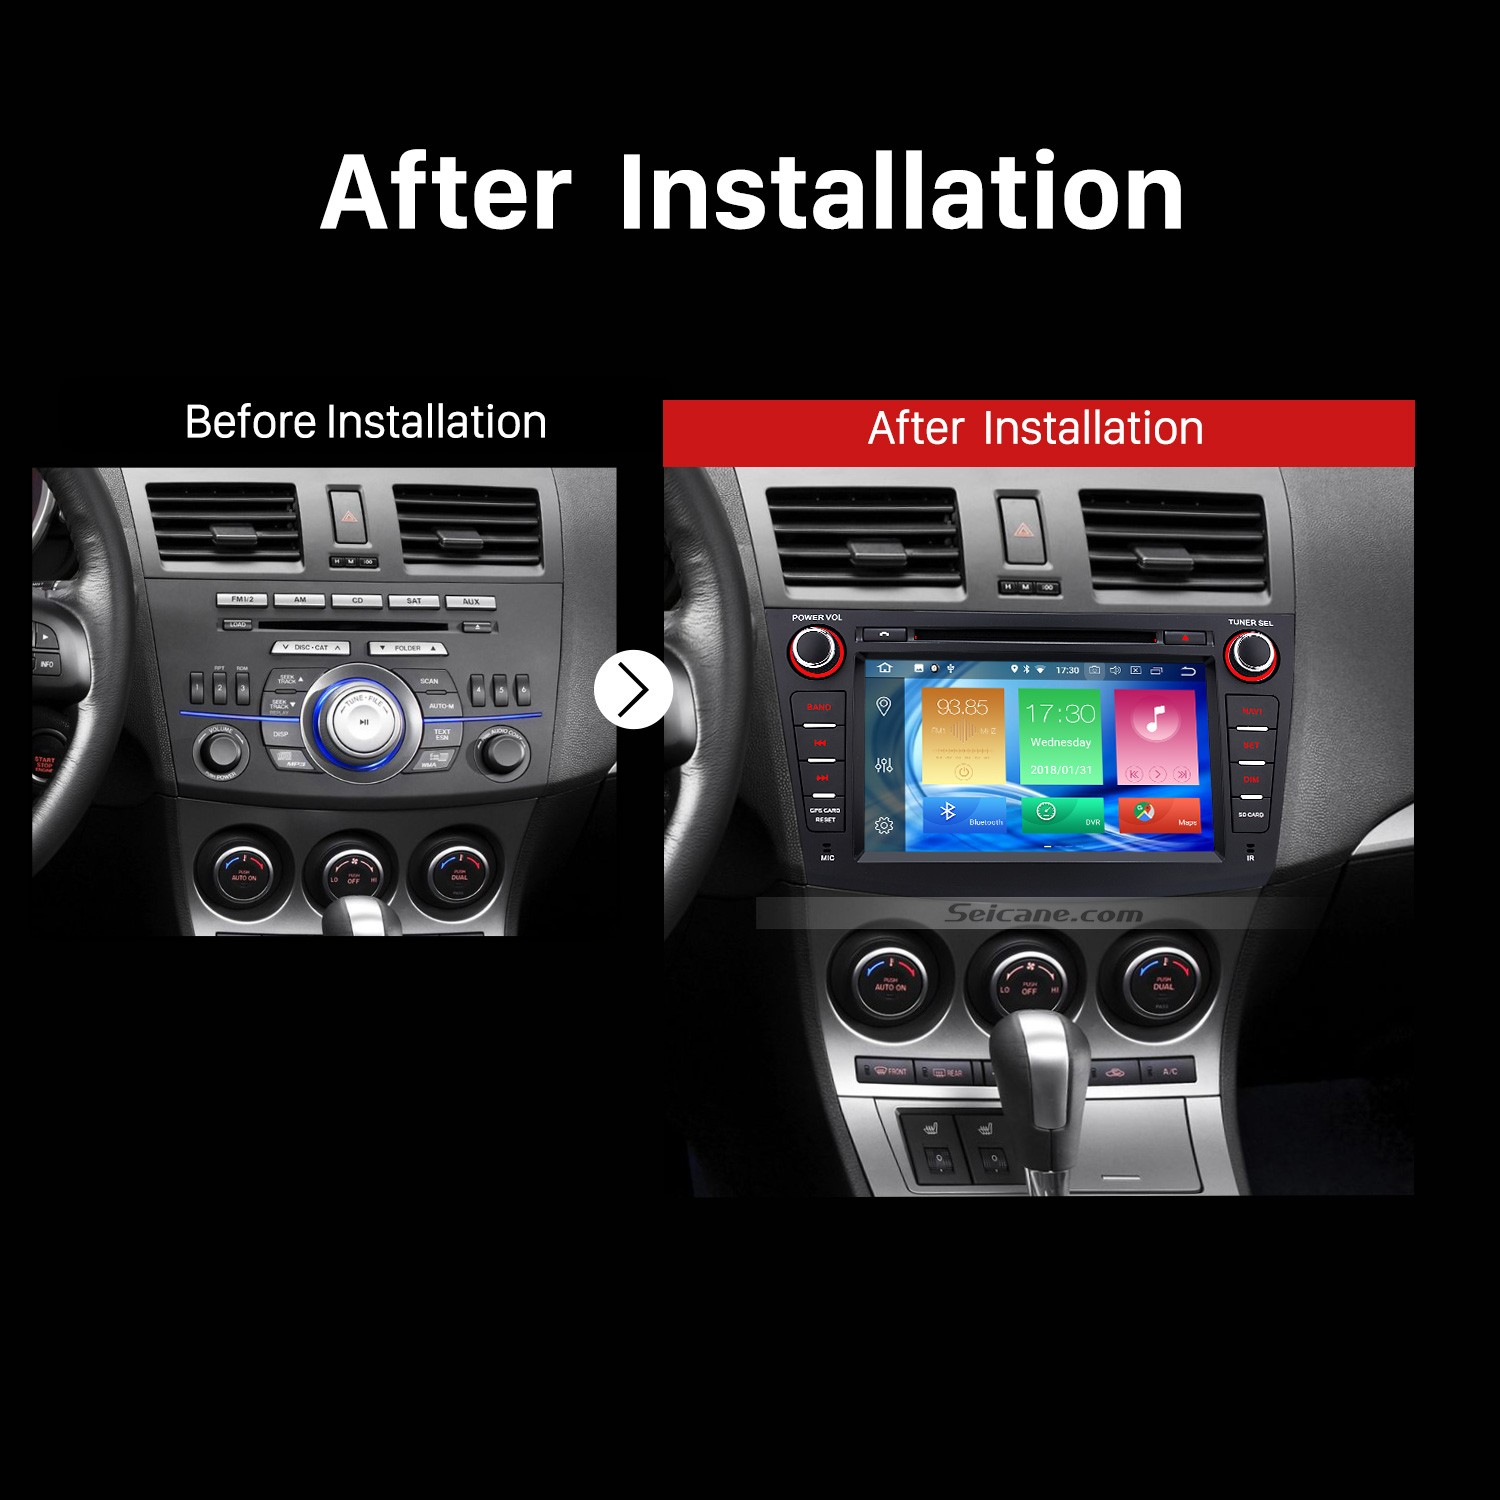 hight resolution of 2009 2010 2011 2012 mazda 3 car stereo after installation